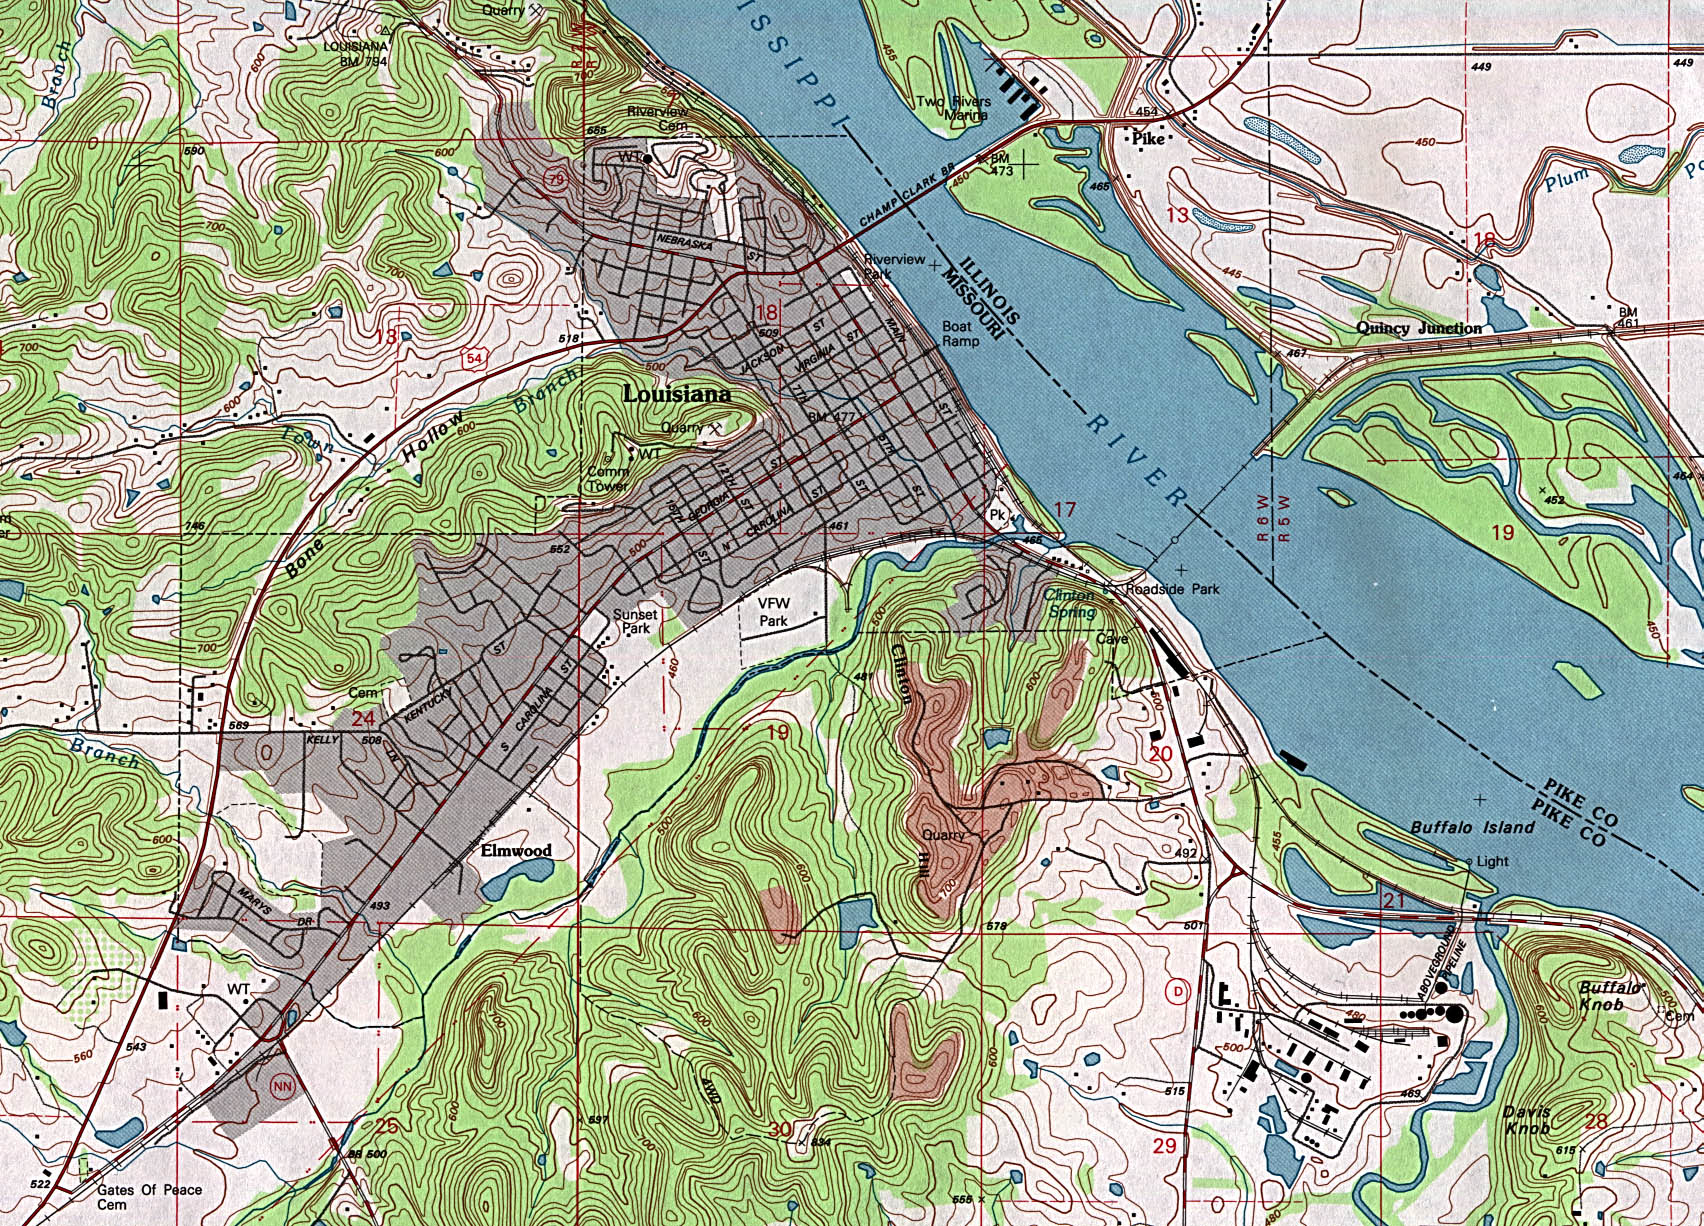 Louisiana Topographic City Map, Missouri, United States